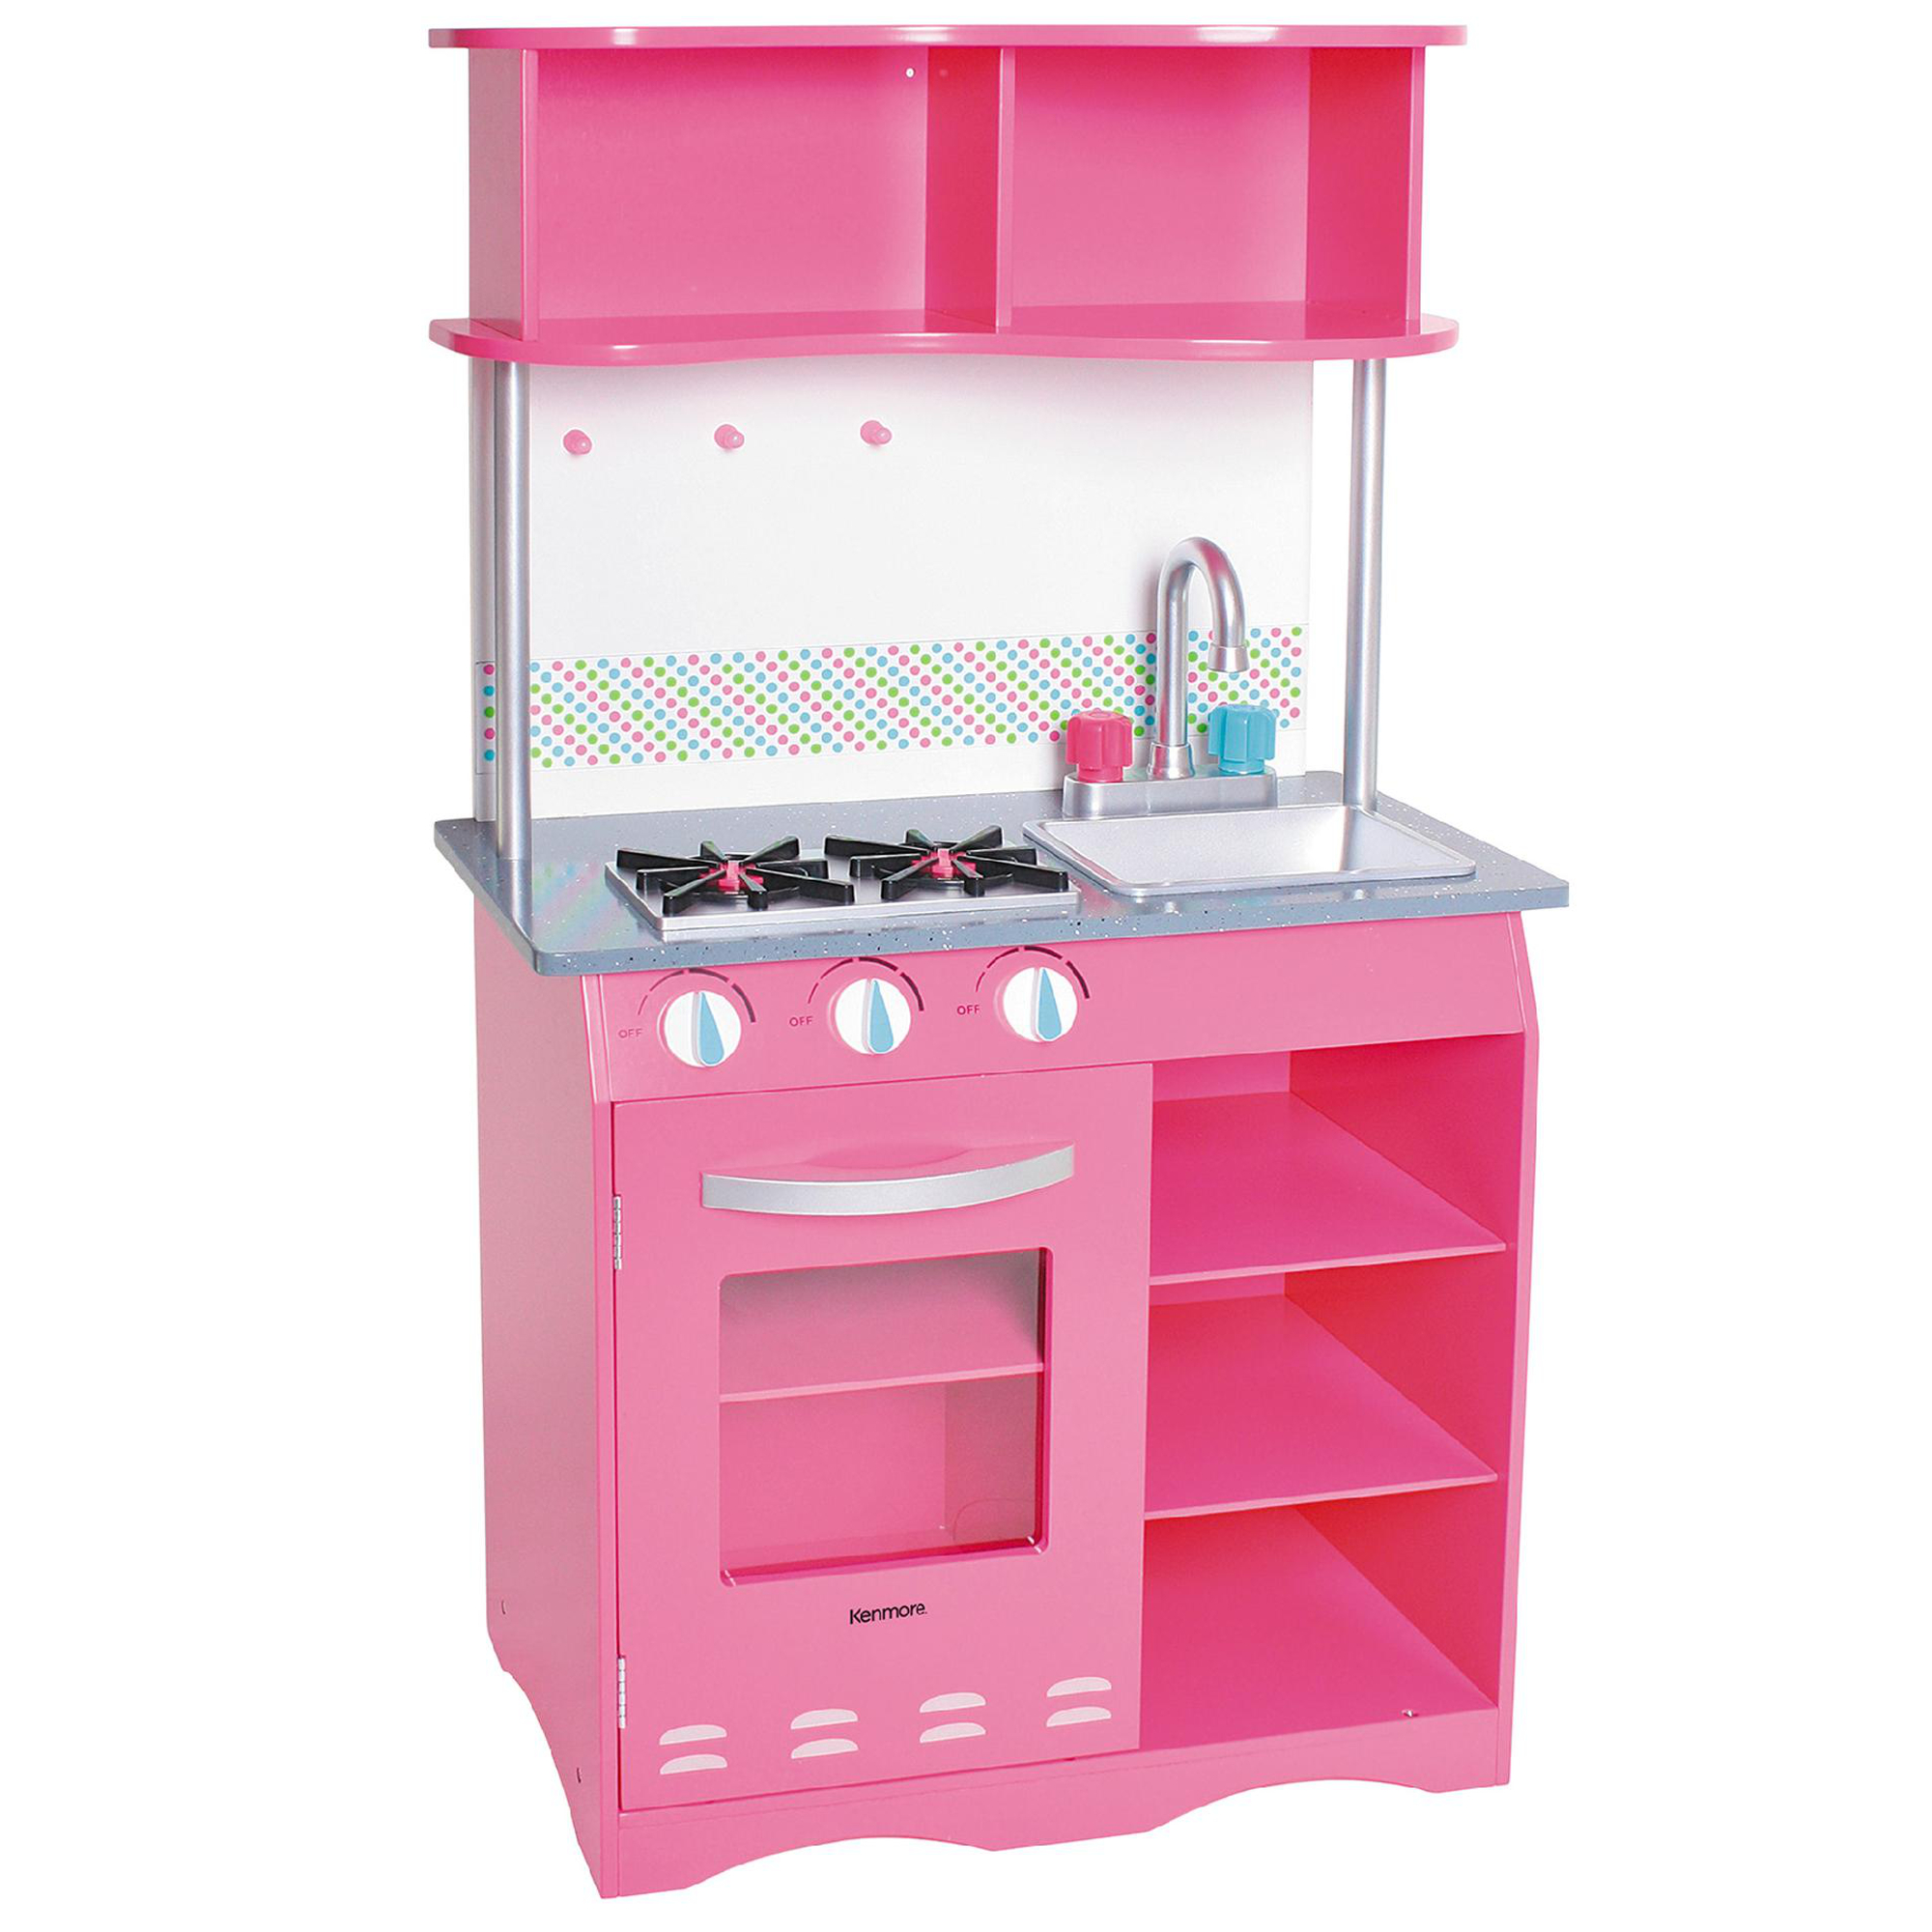 wood kitchen playsets craigslist table play kitchens sears kenmore wooden playset